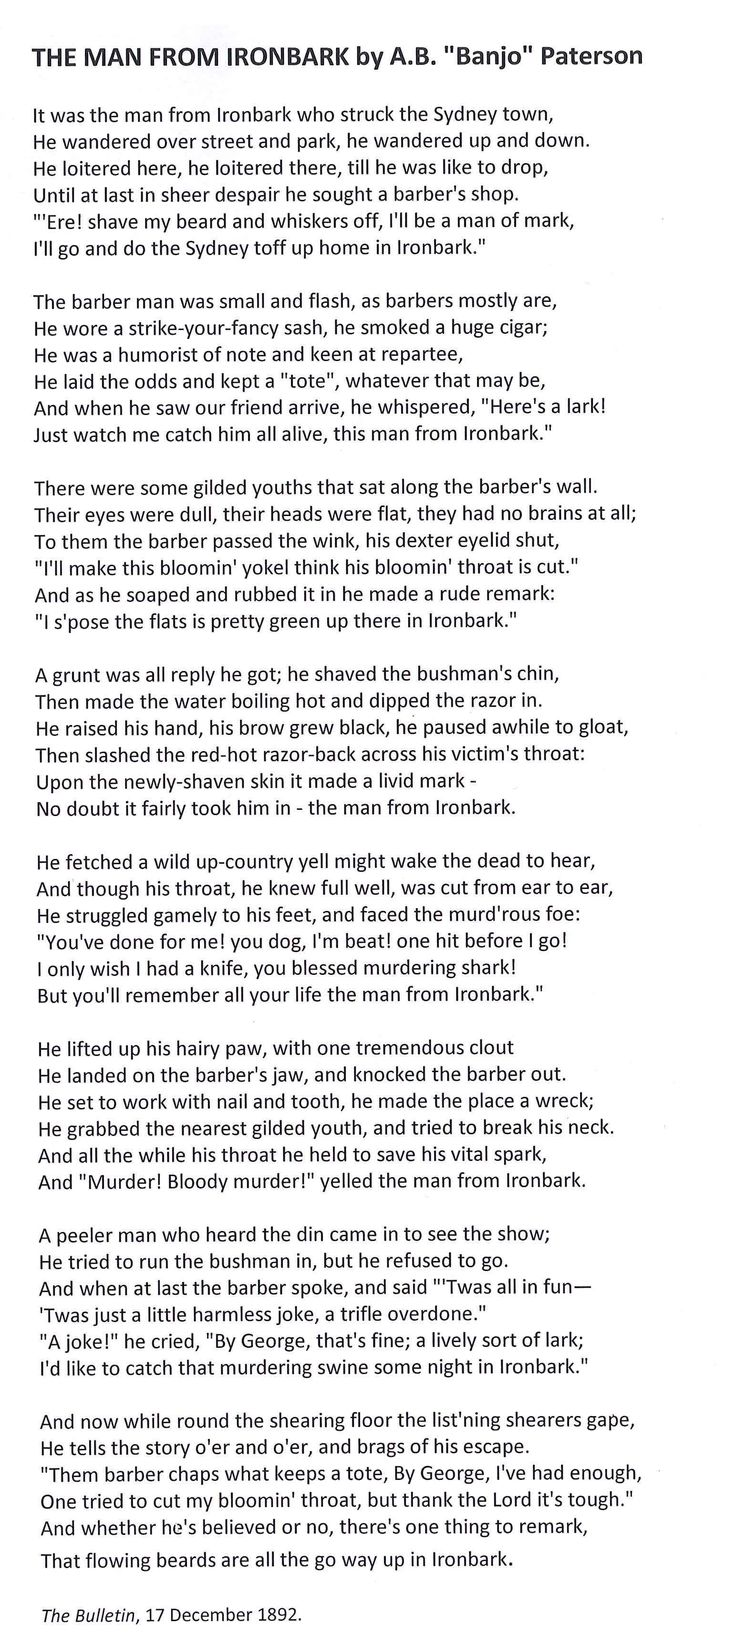 'The Man From Ironbark'.  Banjo Patterson. What a great poem.